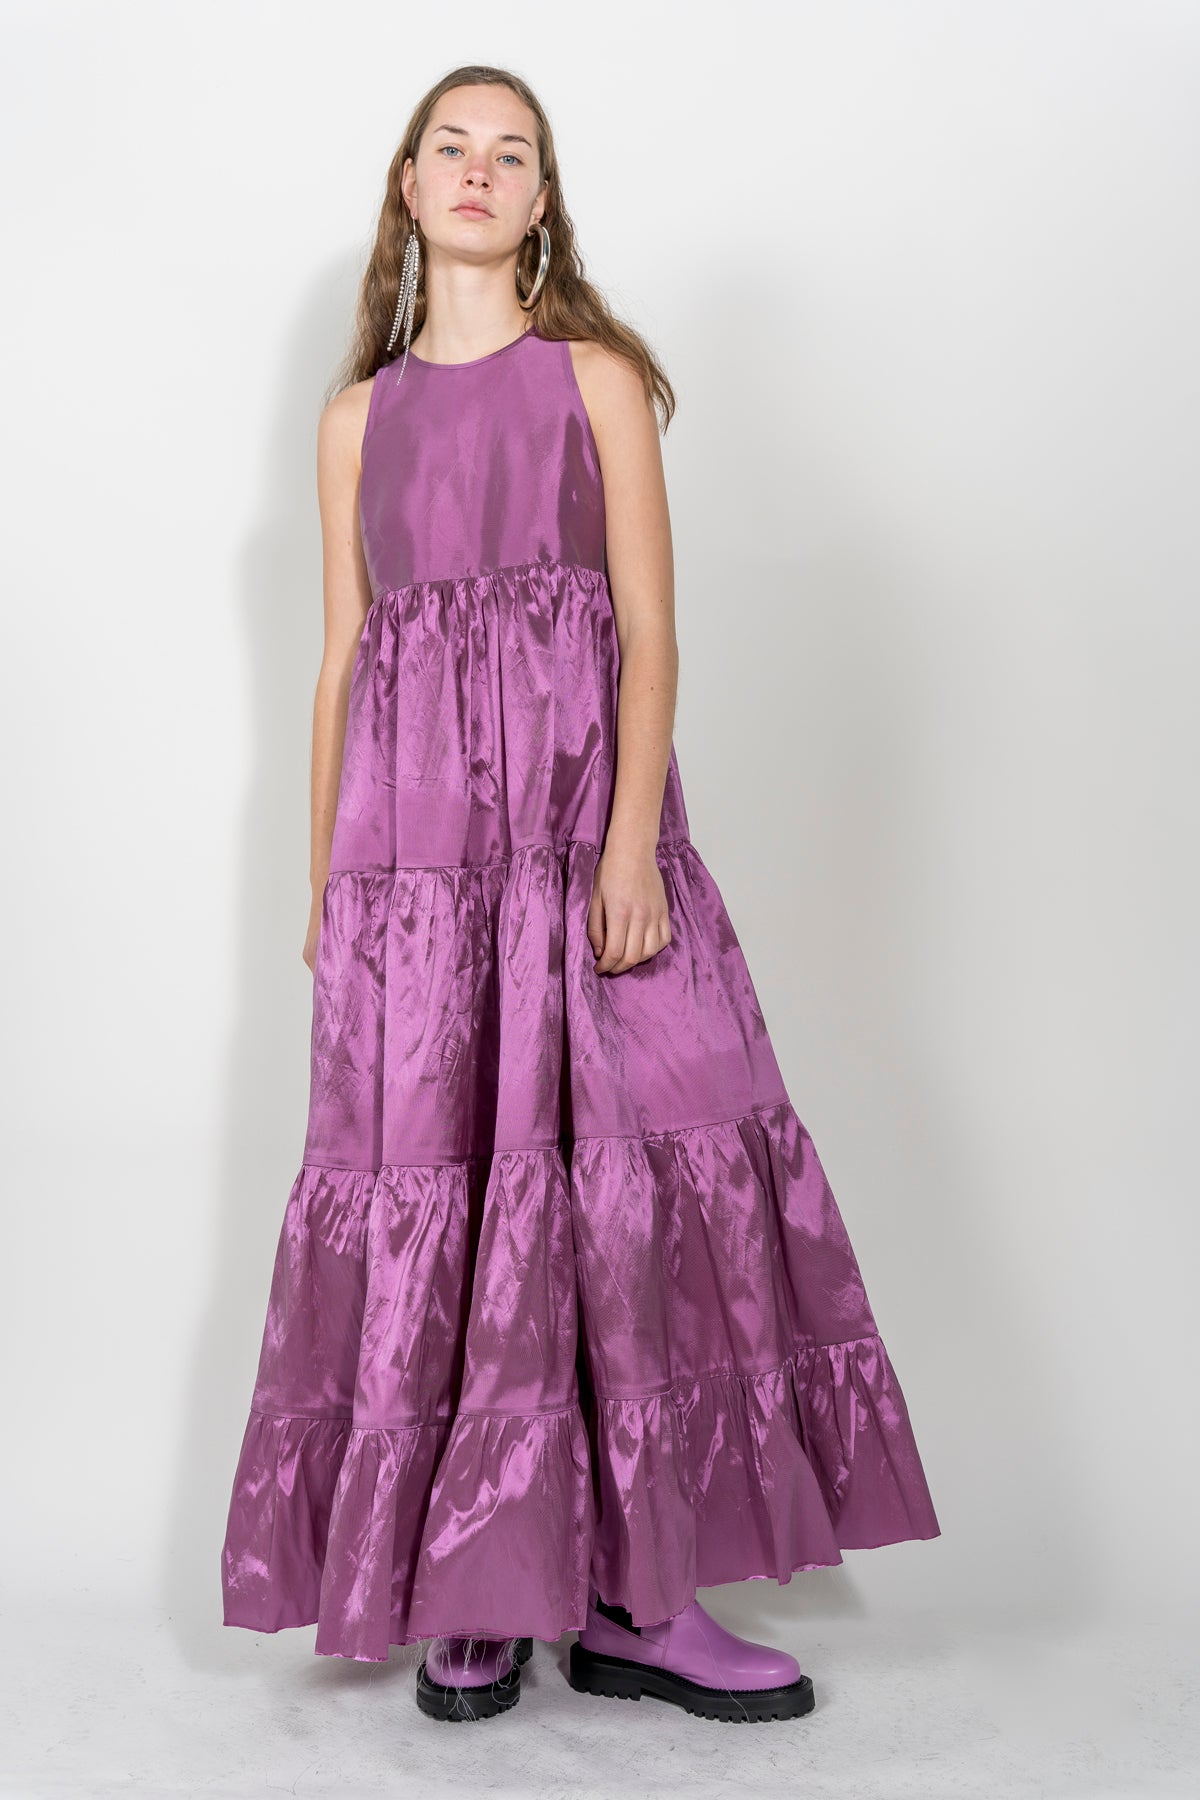 LILAC FLOOR LENGHT GATHERED PANEL DRESS